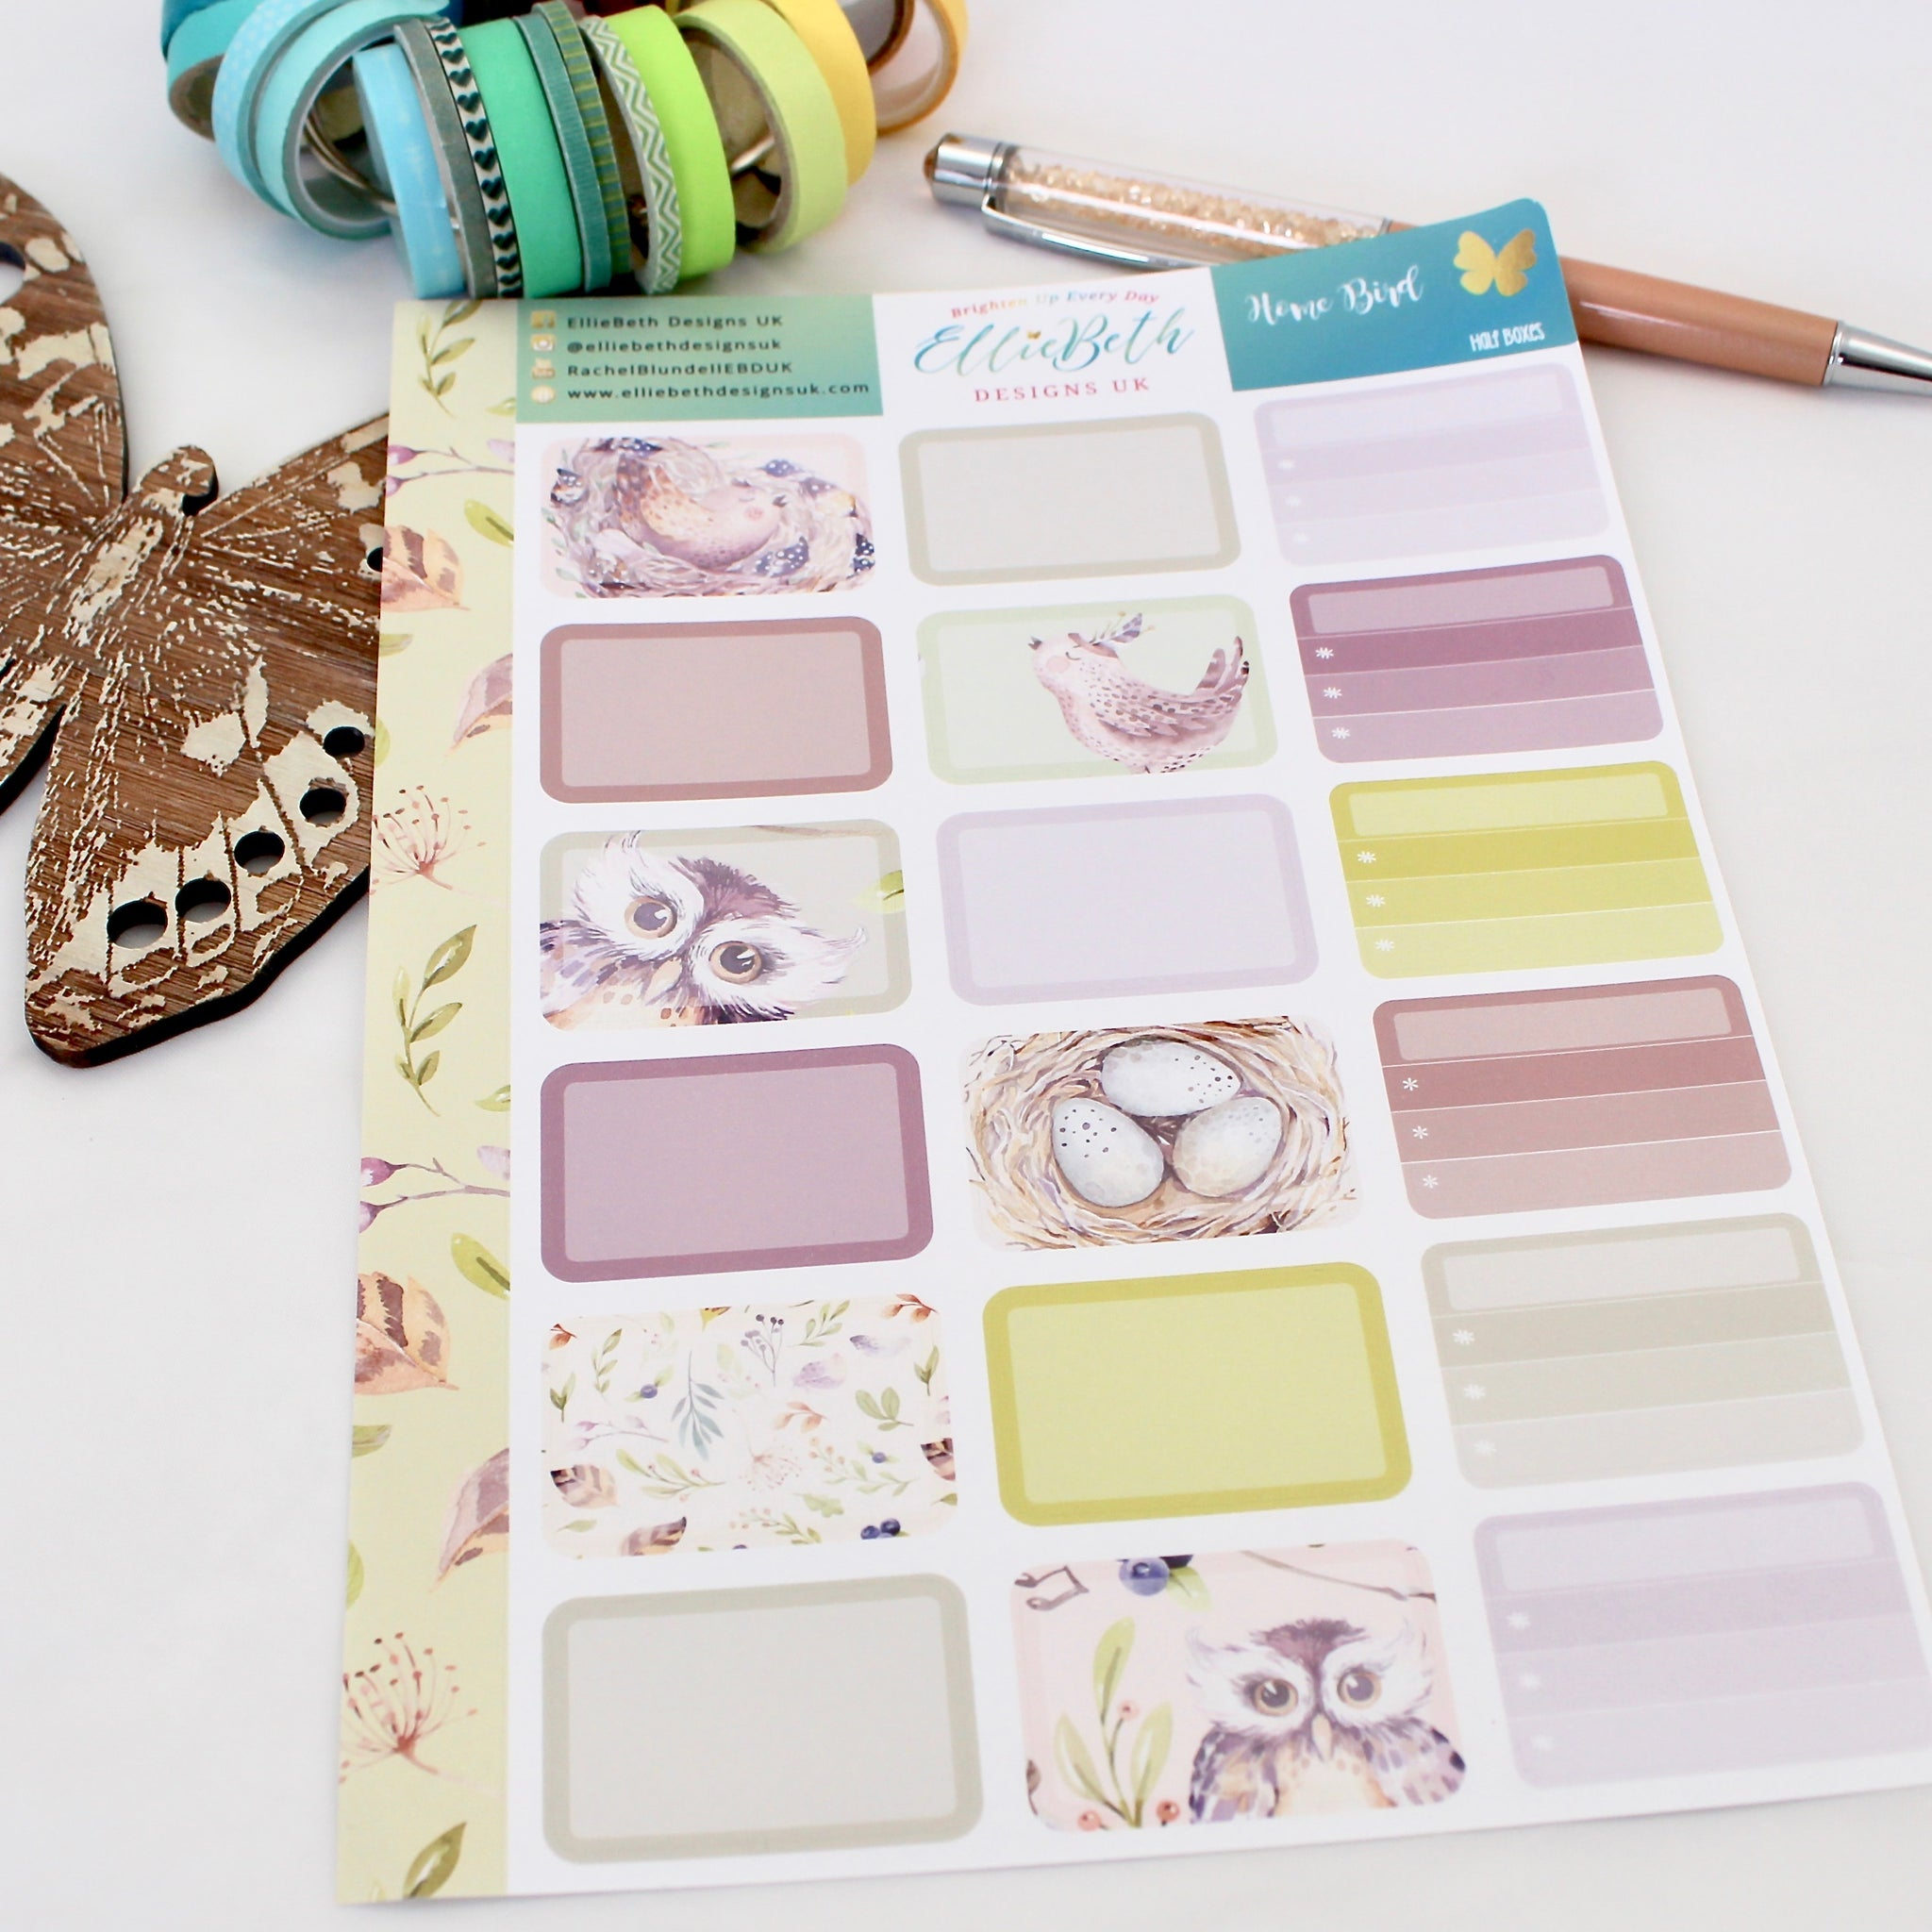 'Home Bird' - Half Boxes -  A5 binder ready planner stickers